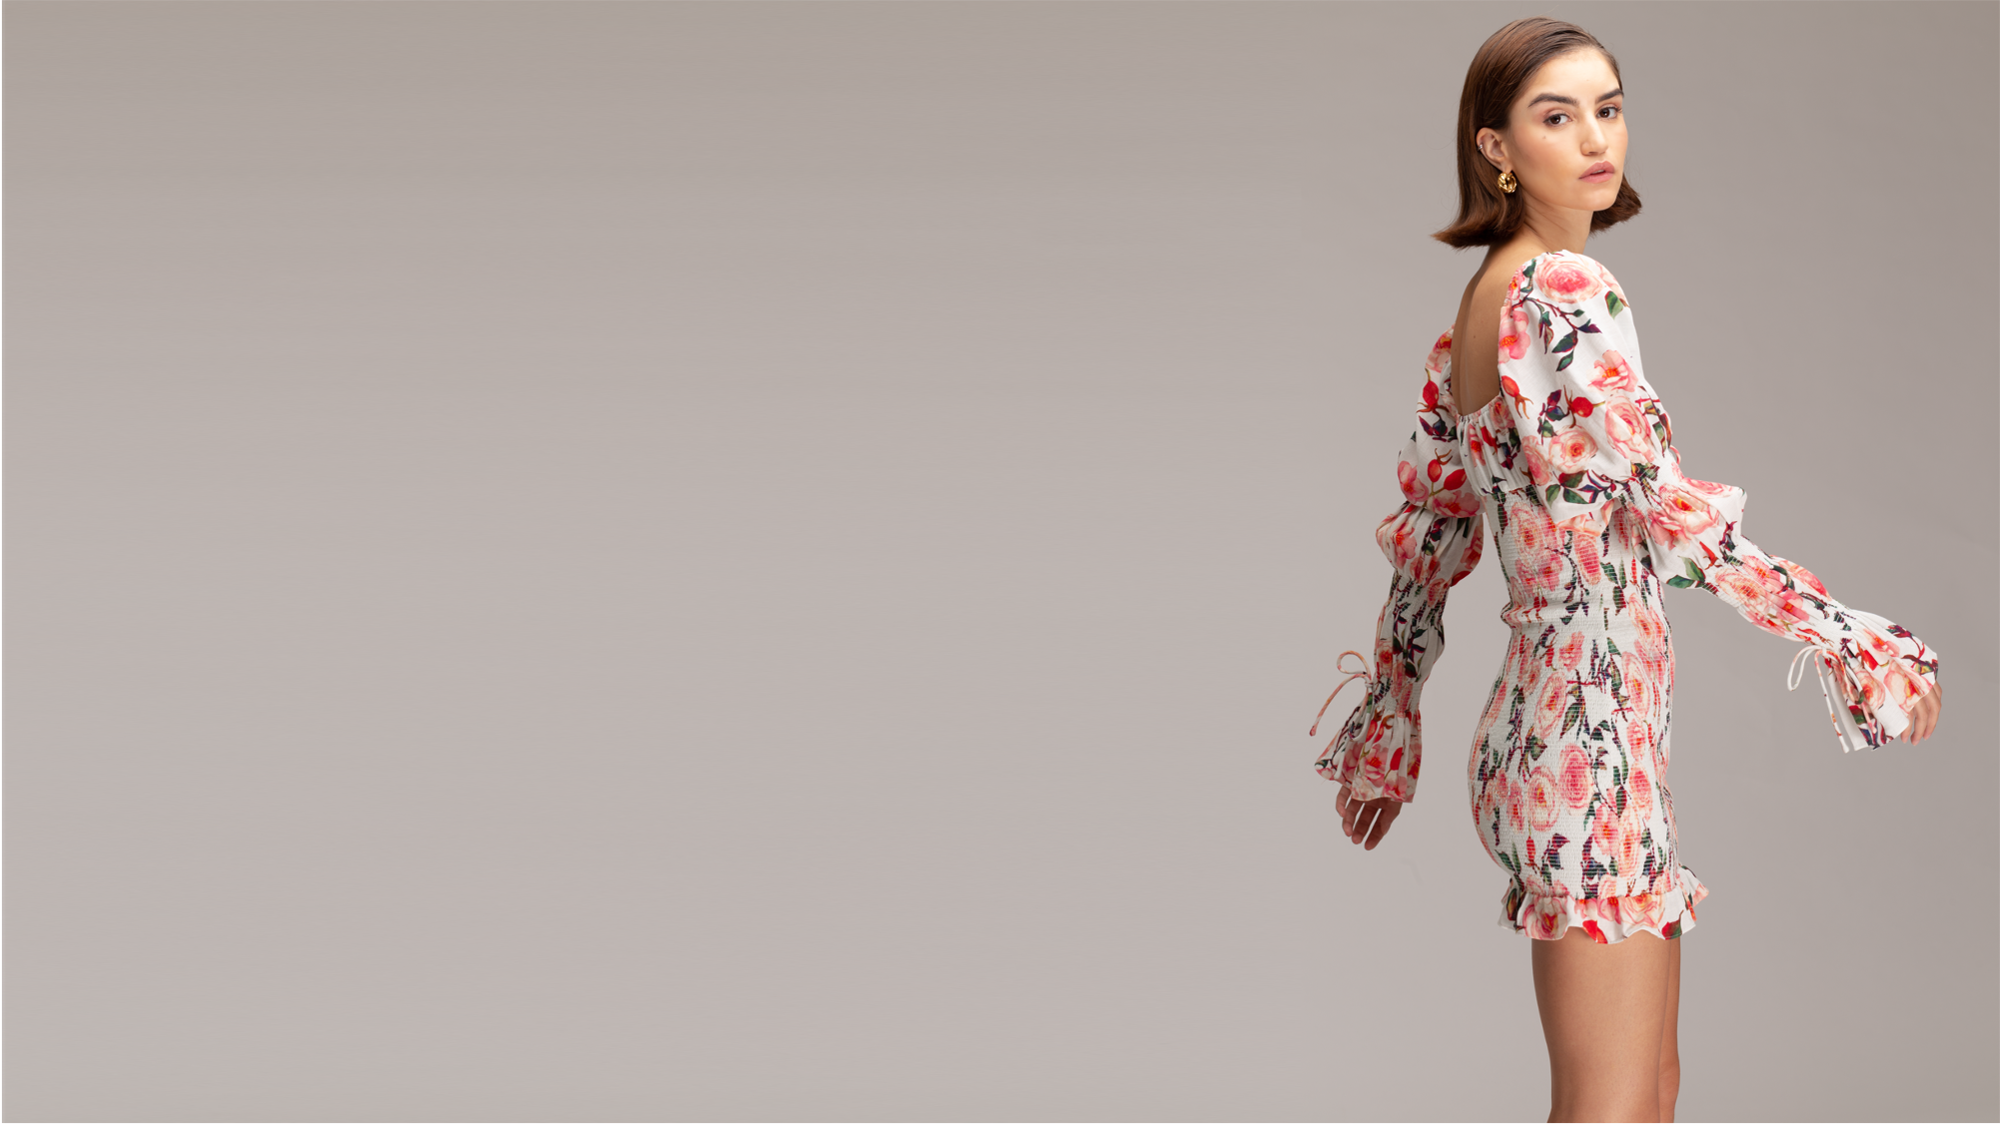 Choose a piece from Sau Lee's new Summer collection with this private shopping experience